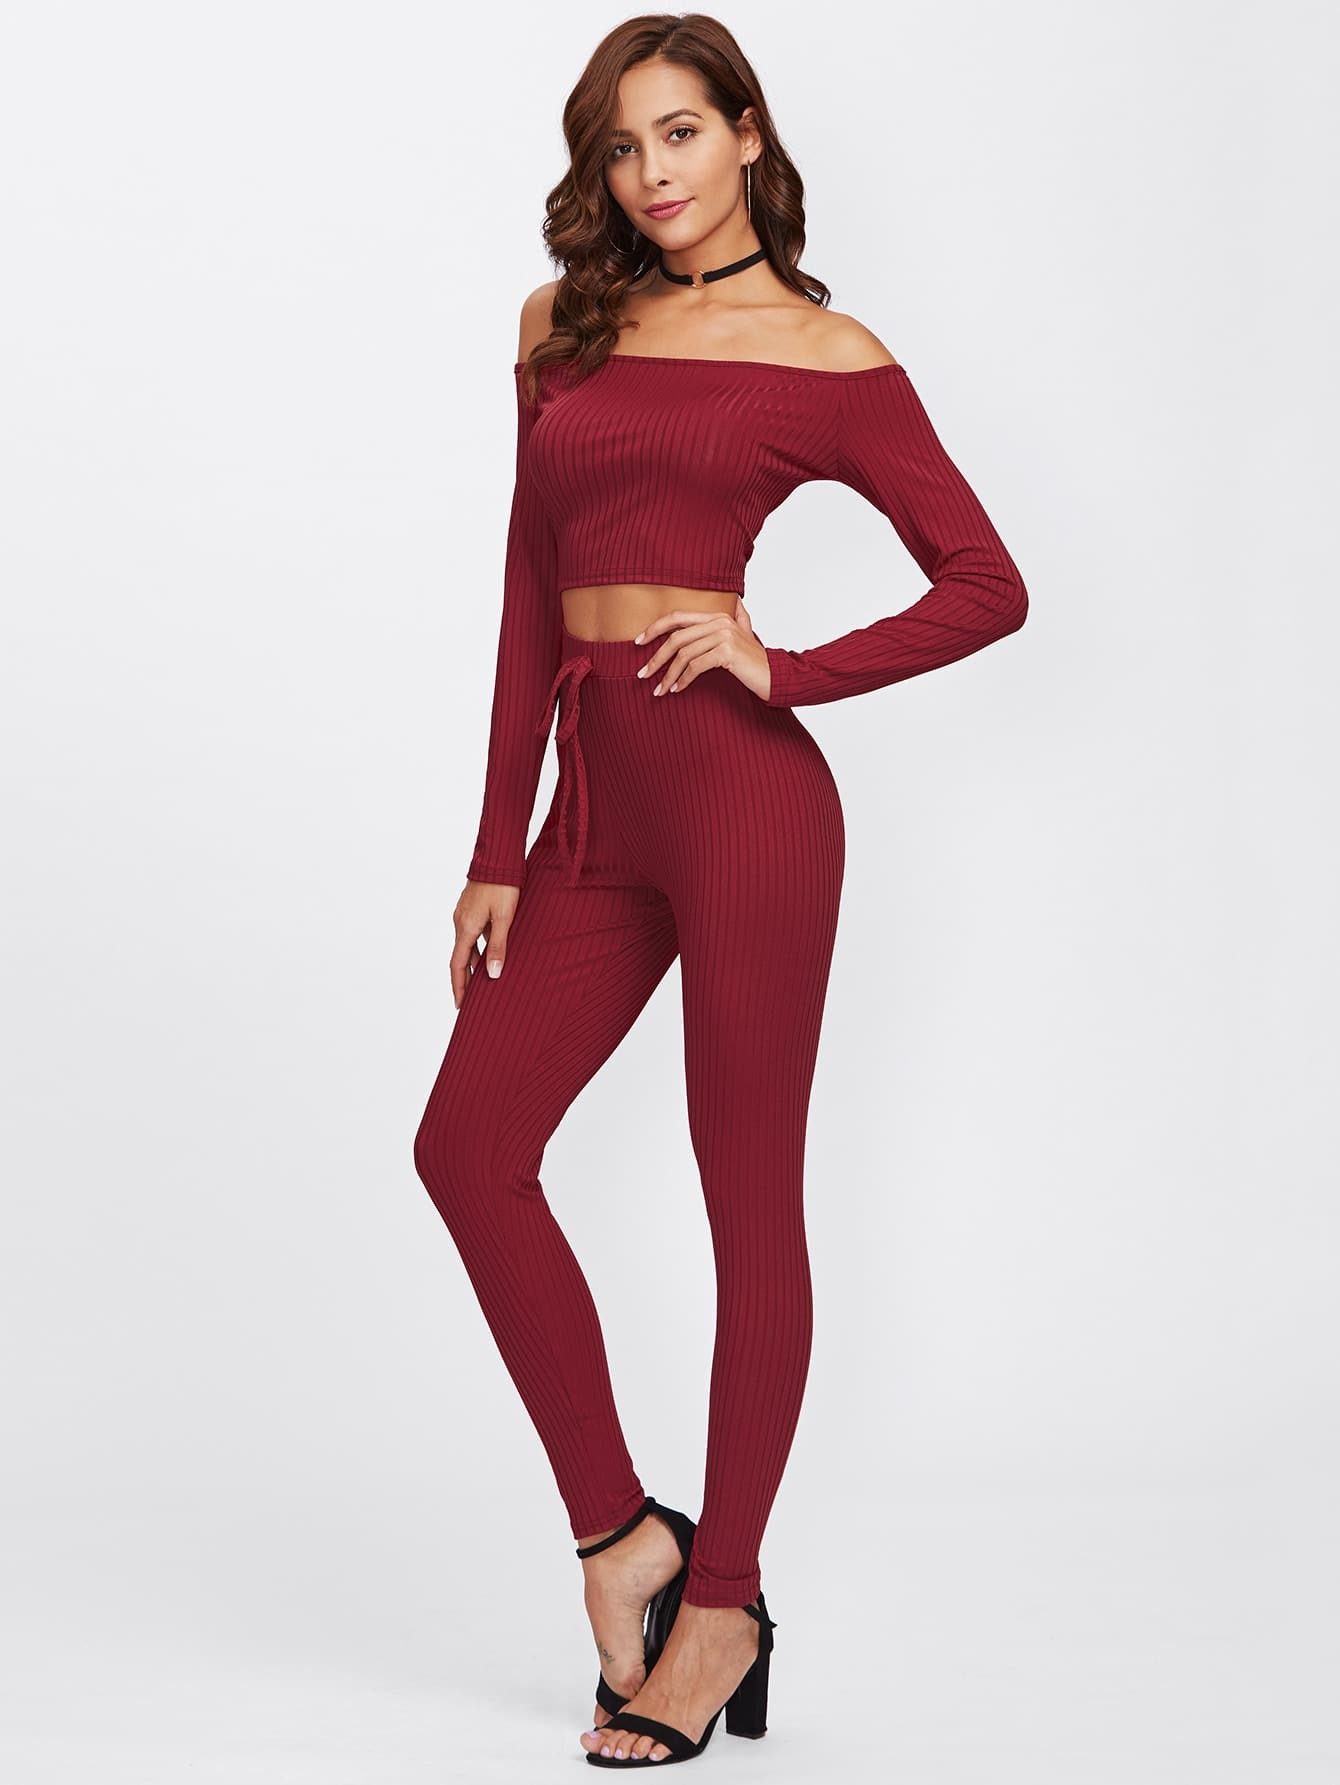 Off Shoulder Ribbed Top And Drawstring Waist Pants twopiece171121330